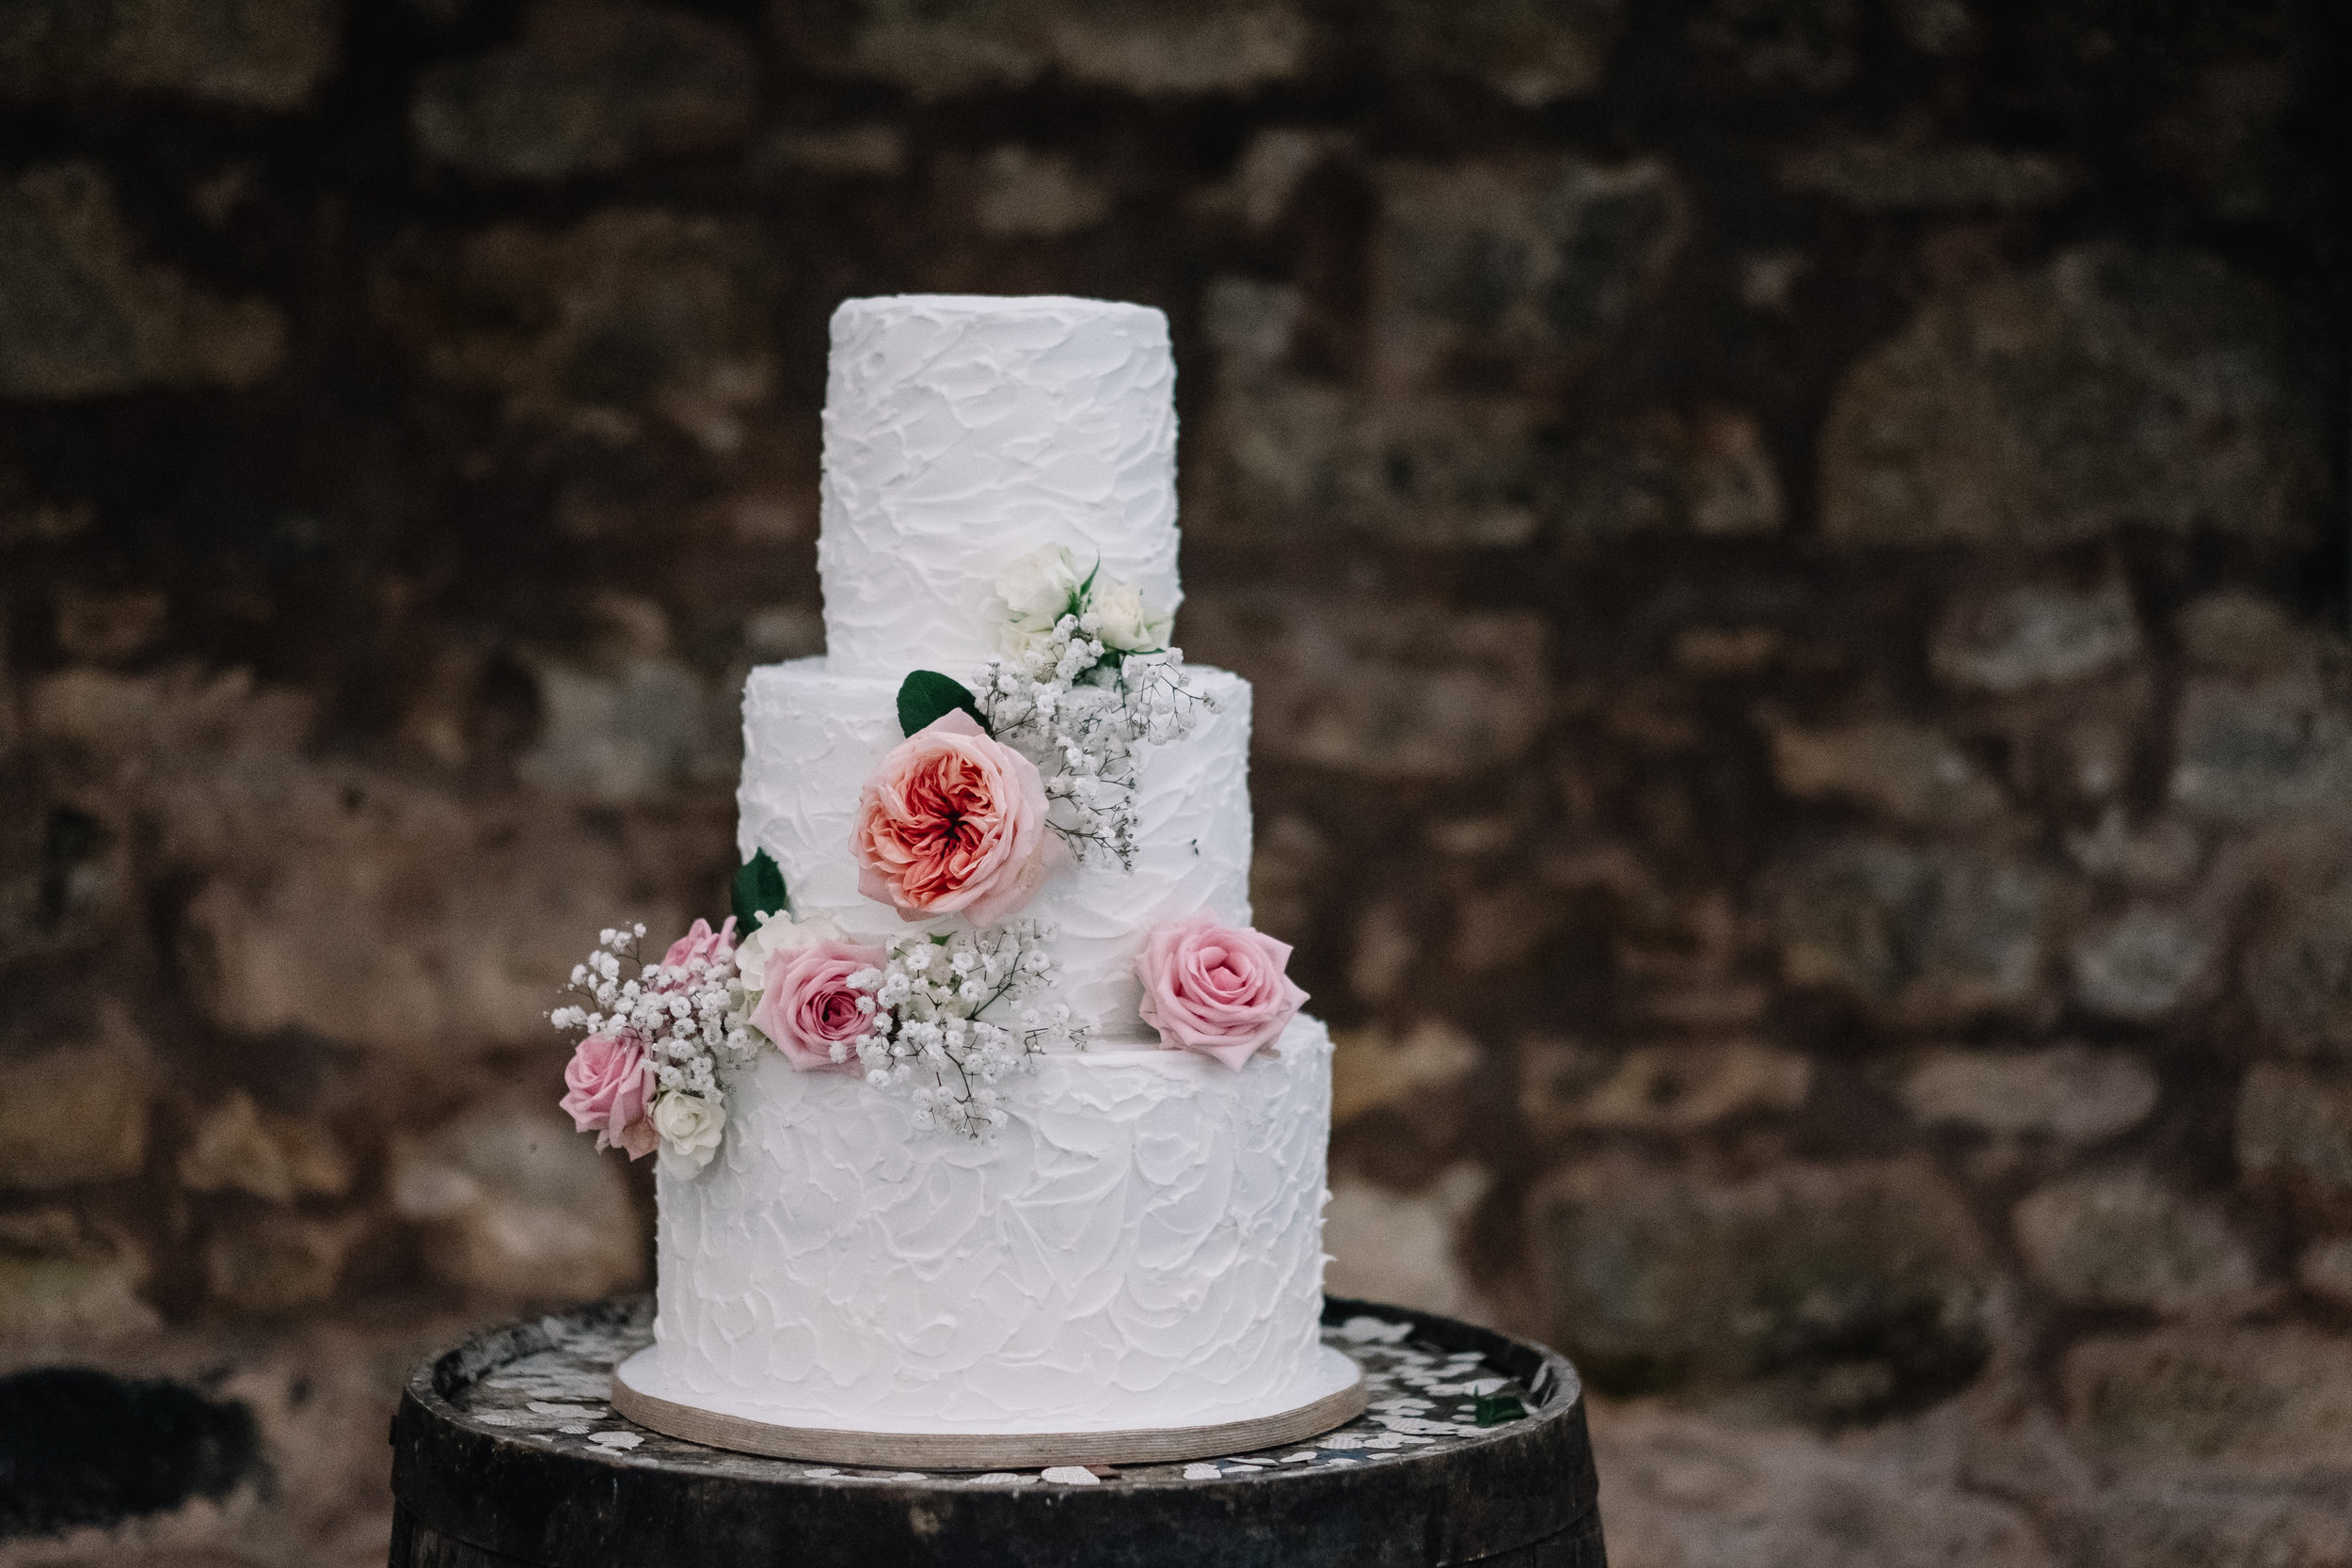 Cake: Family member | Venue:  The Cow Shed